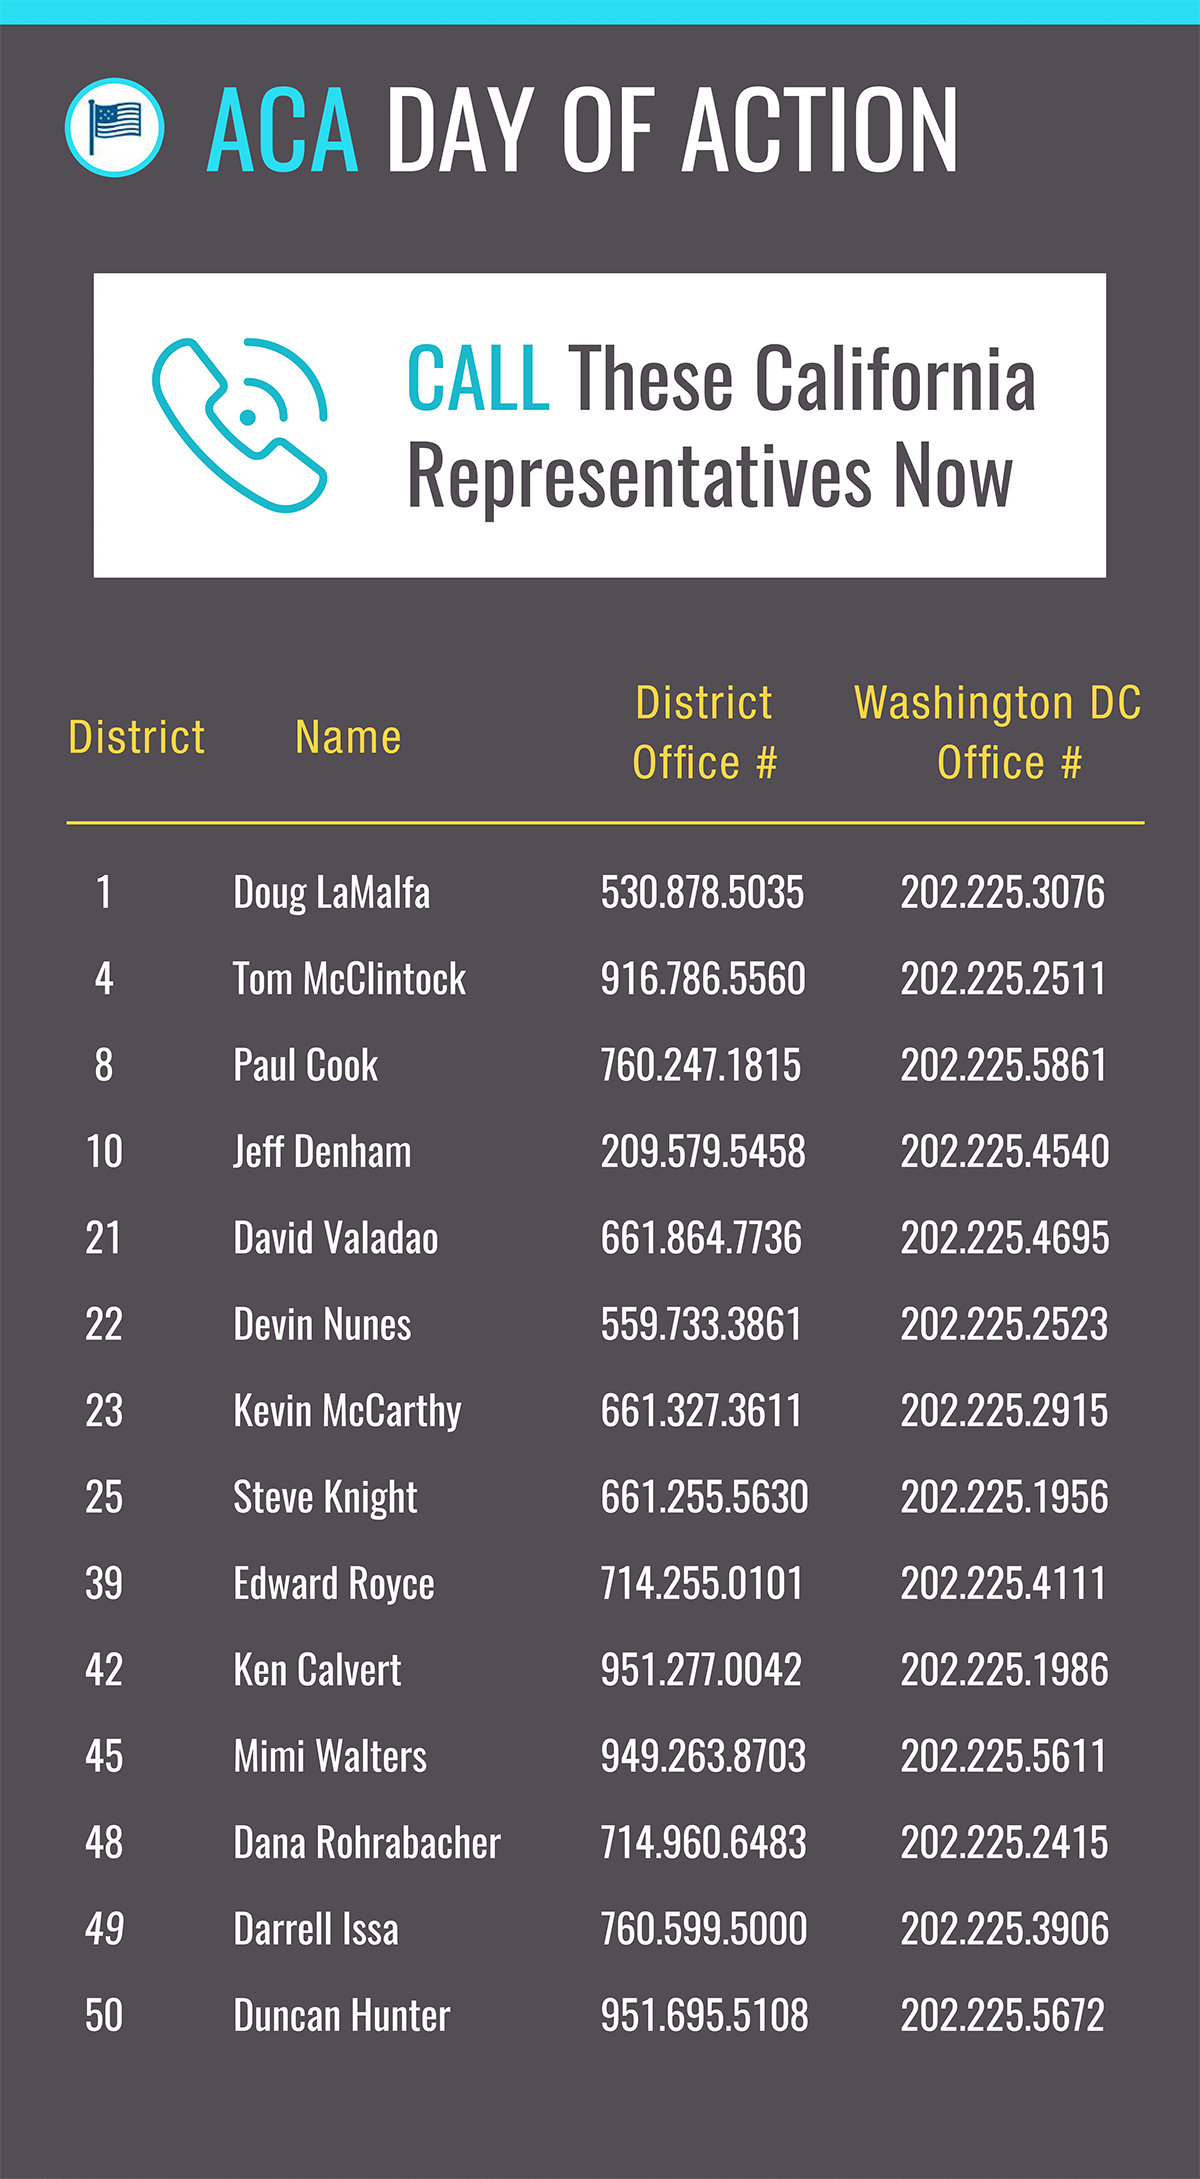 ACA Day of Action Representatives List